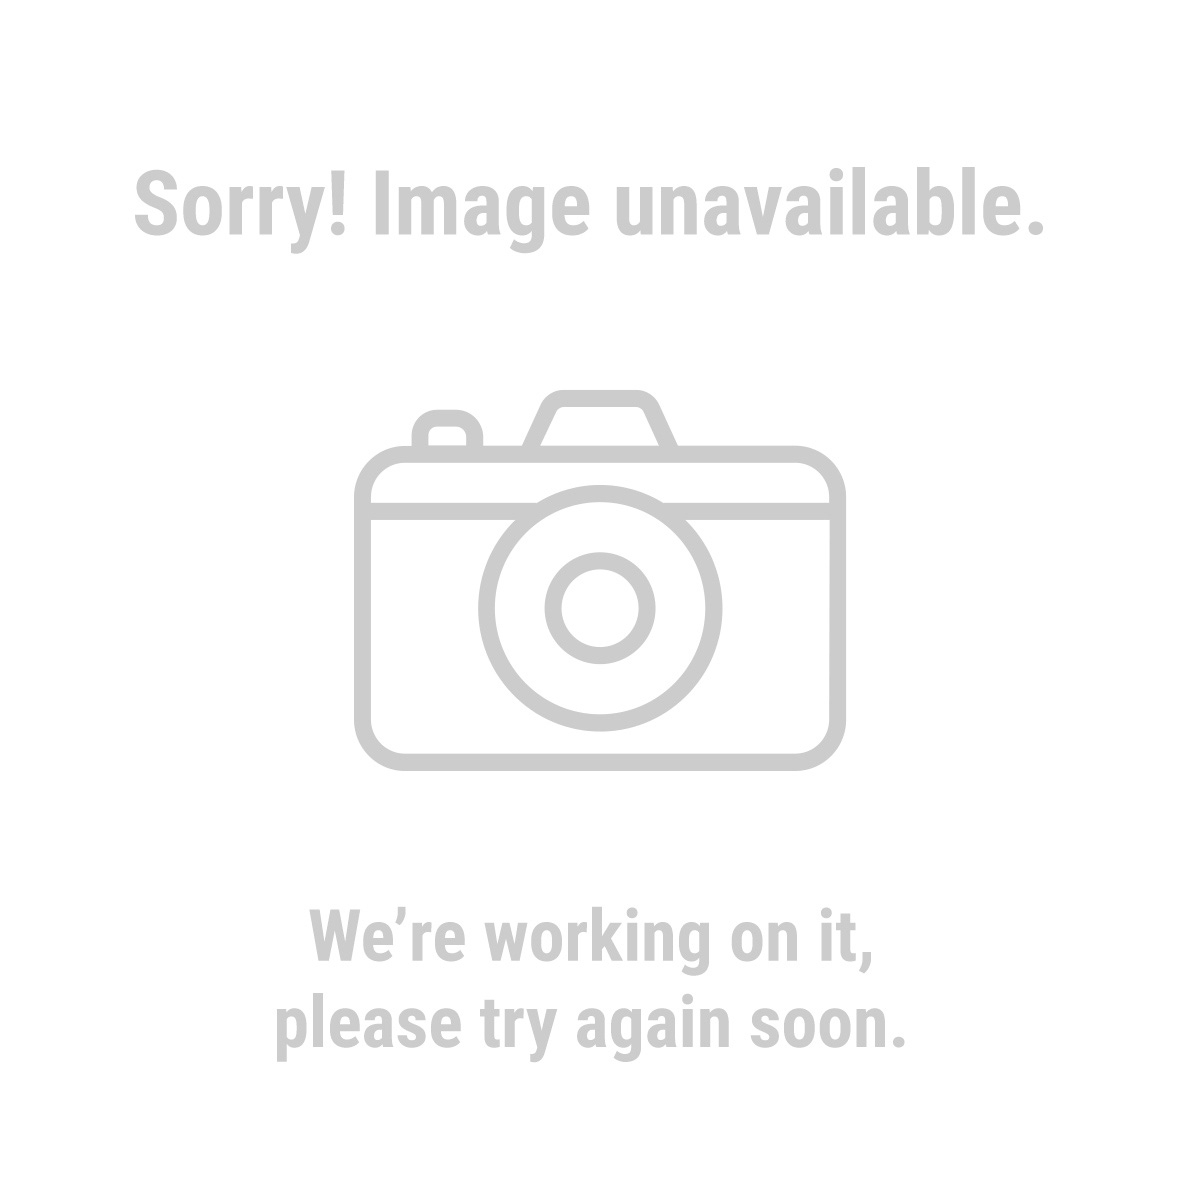 HARDY 63154 Full Grain Leather Work Gloves X-Large